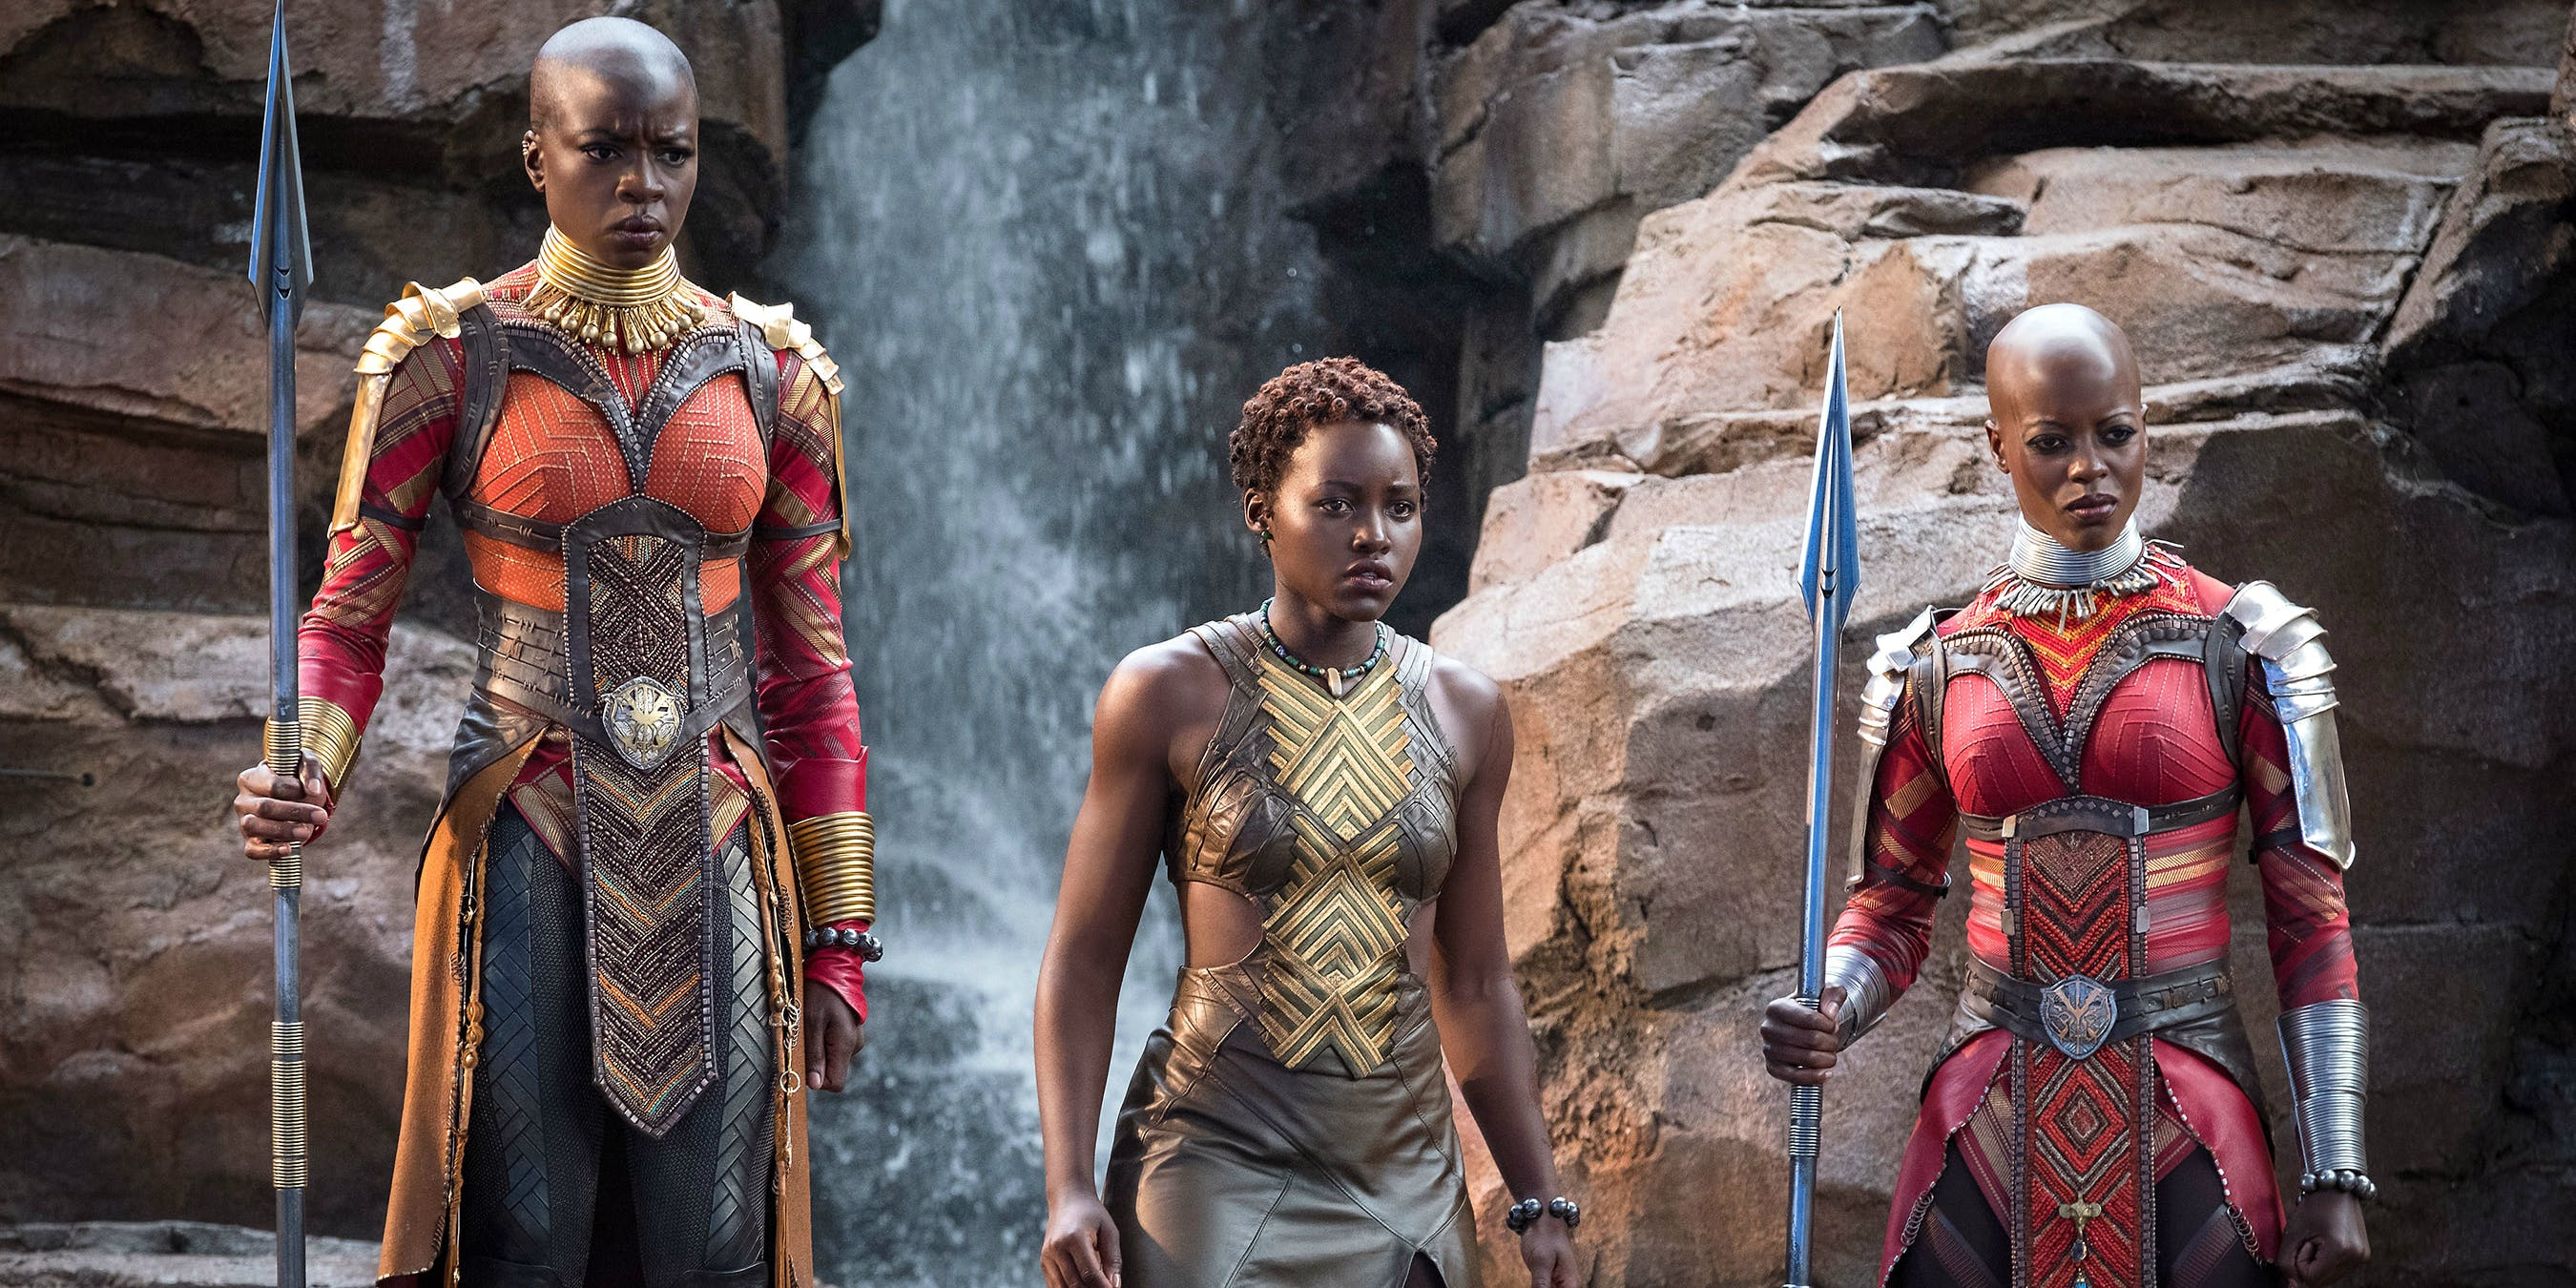 Nakia (middle) is also T'Challa's love interest.